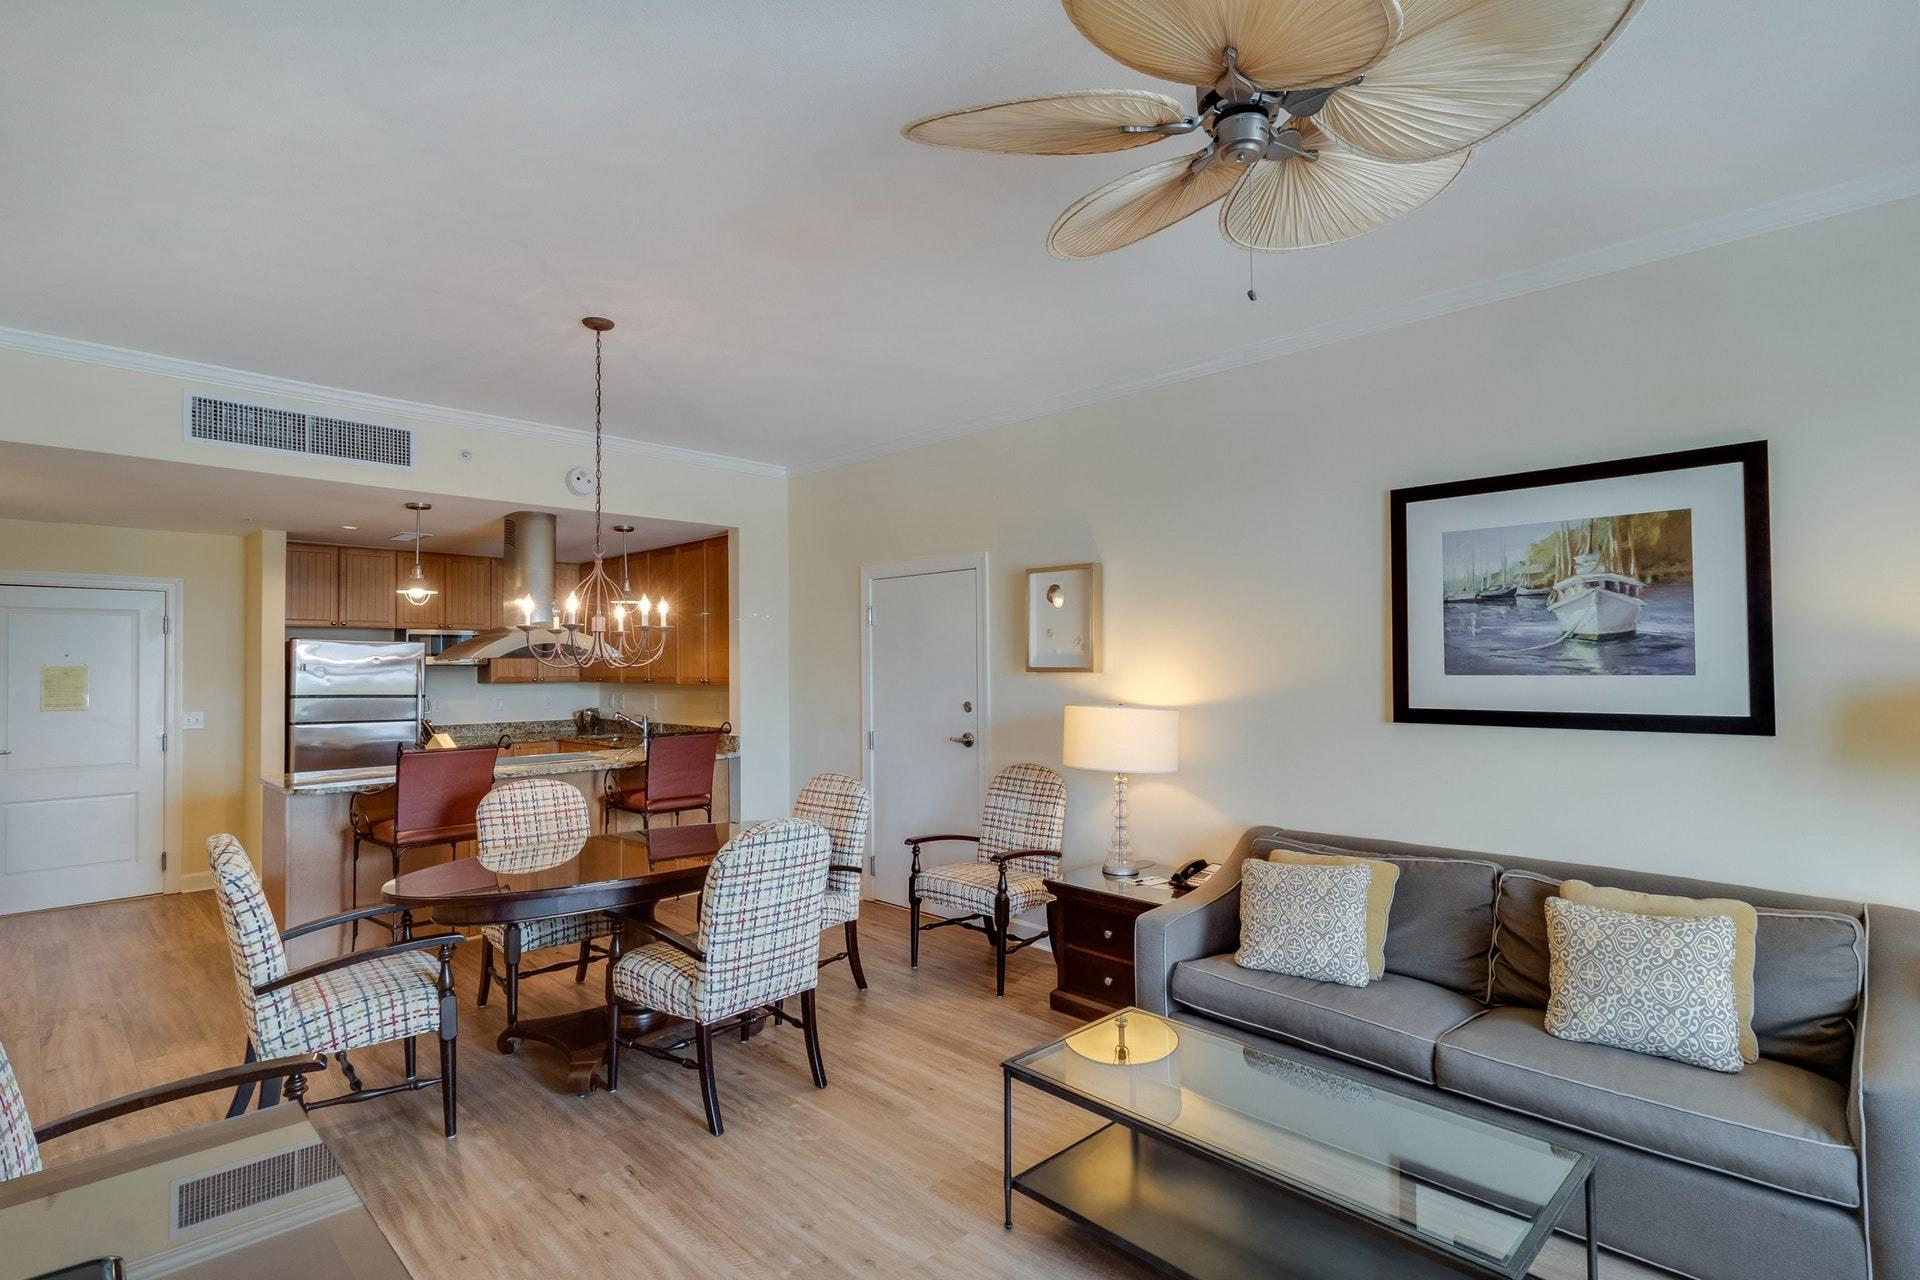 Wild Dunes Homes For Sale - 505/507 Village At Wild Dunes, Isle of Palms, SC - 26